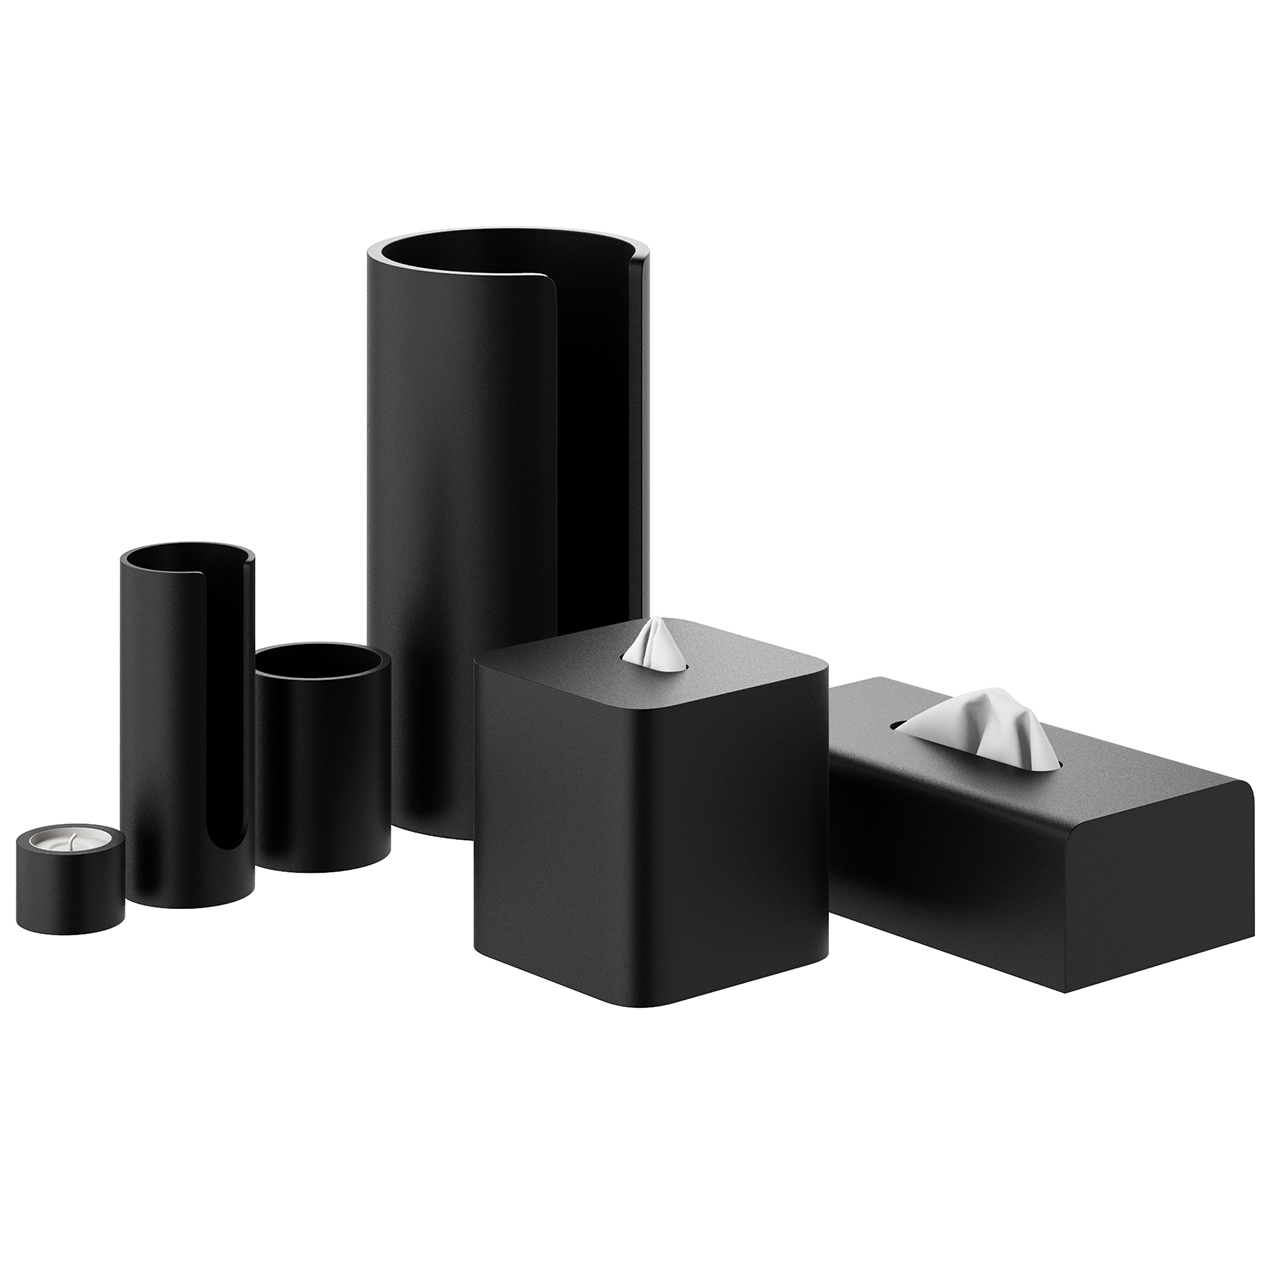 Black Stone Bathroom Accessories by Decor Walther